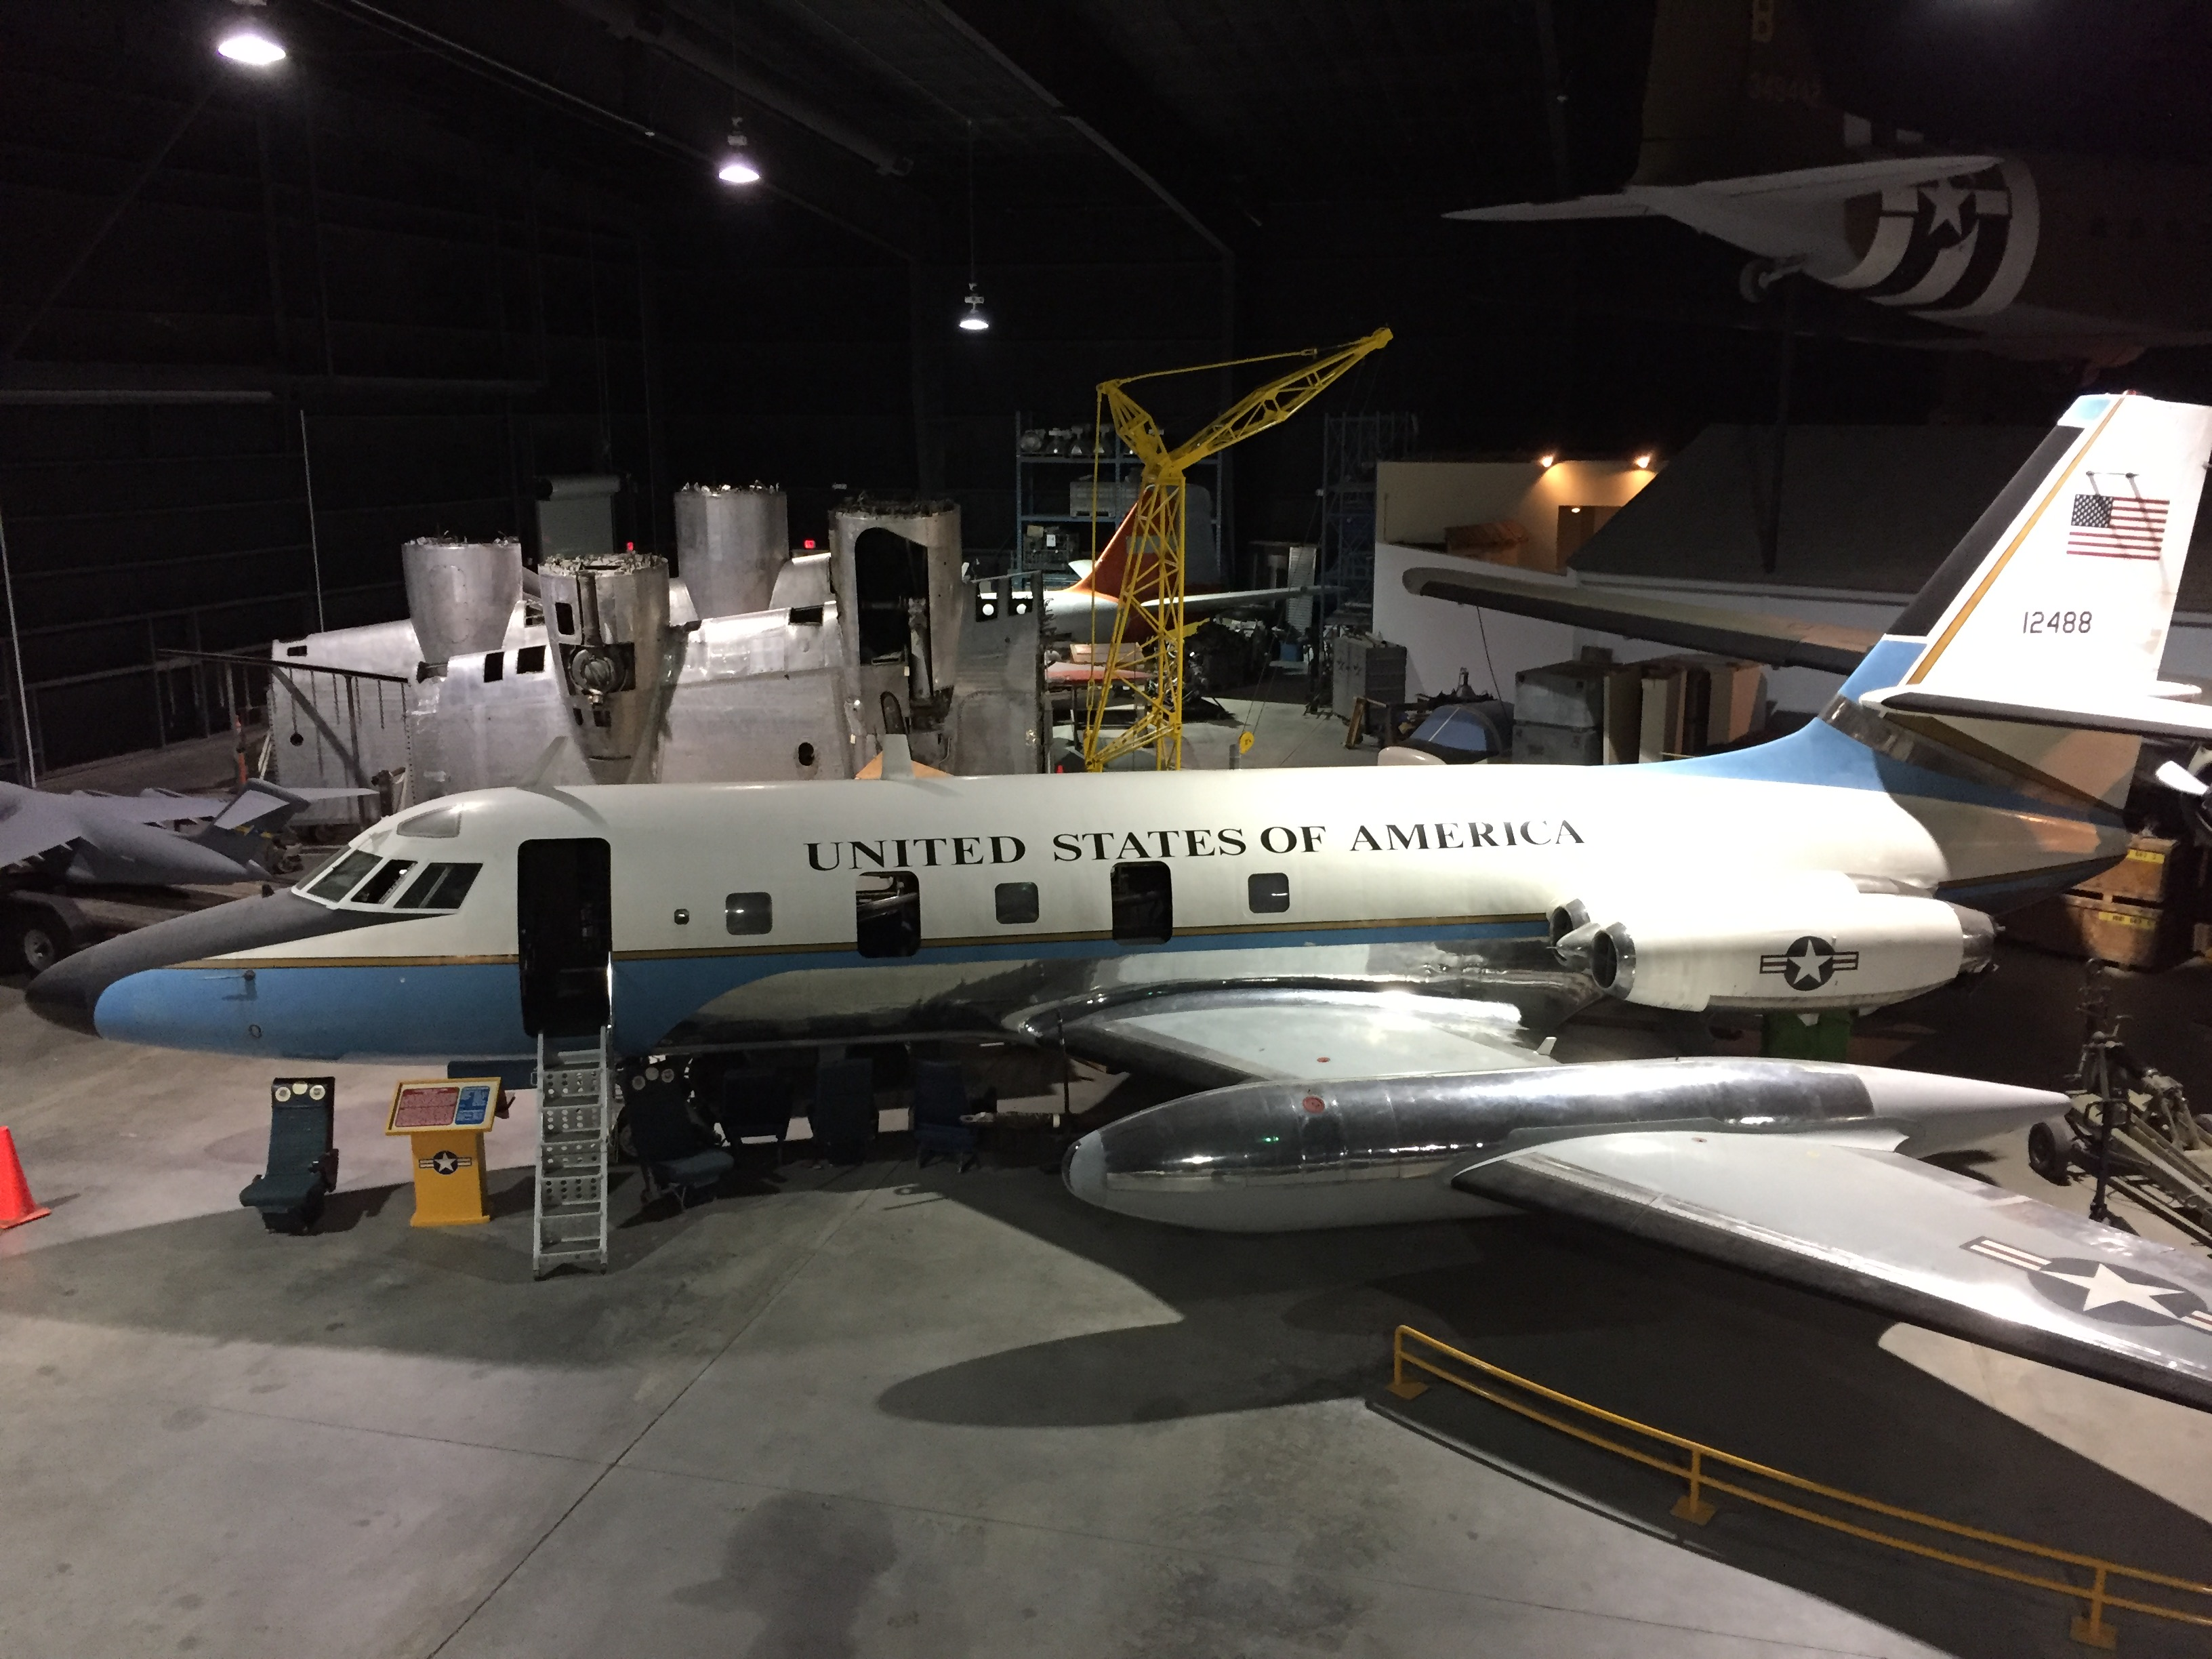 First Look: Planes awaiting restoration at the Museum of Aviation